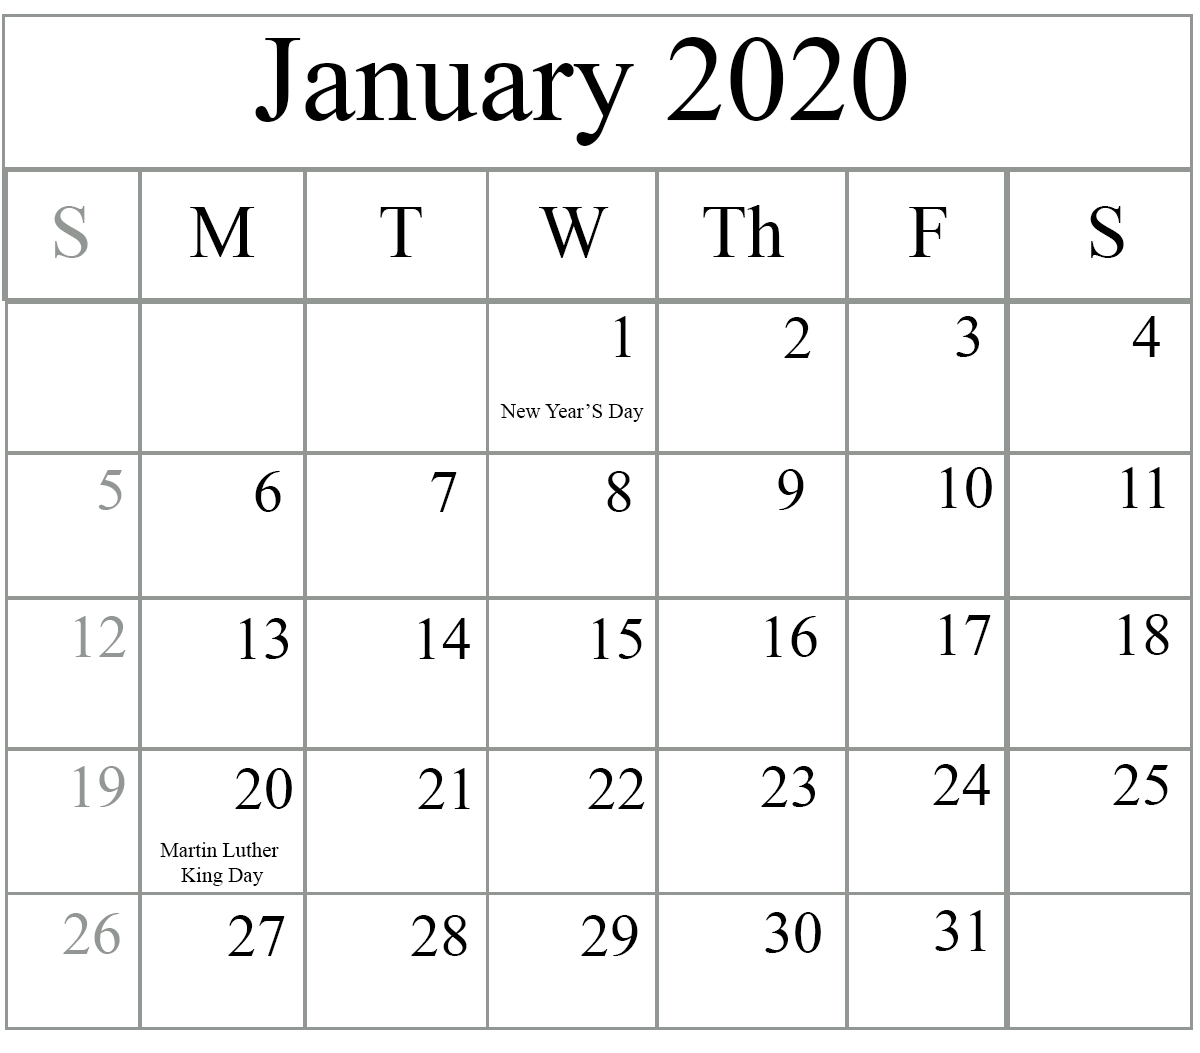 January 2020 Calendar With Holiday | Printable March